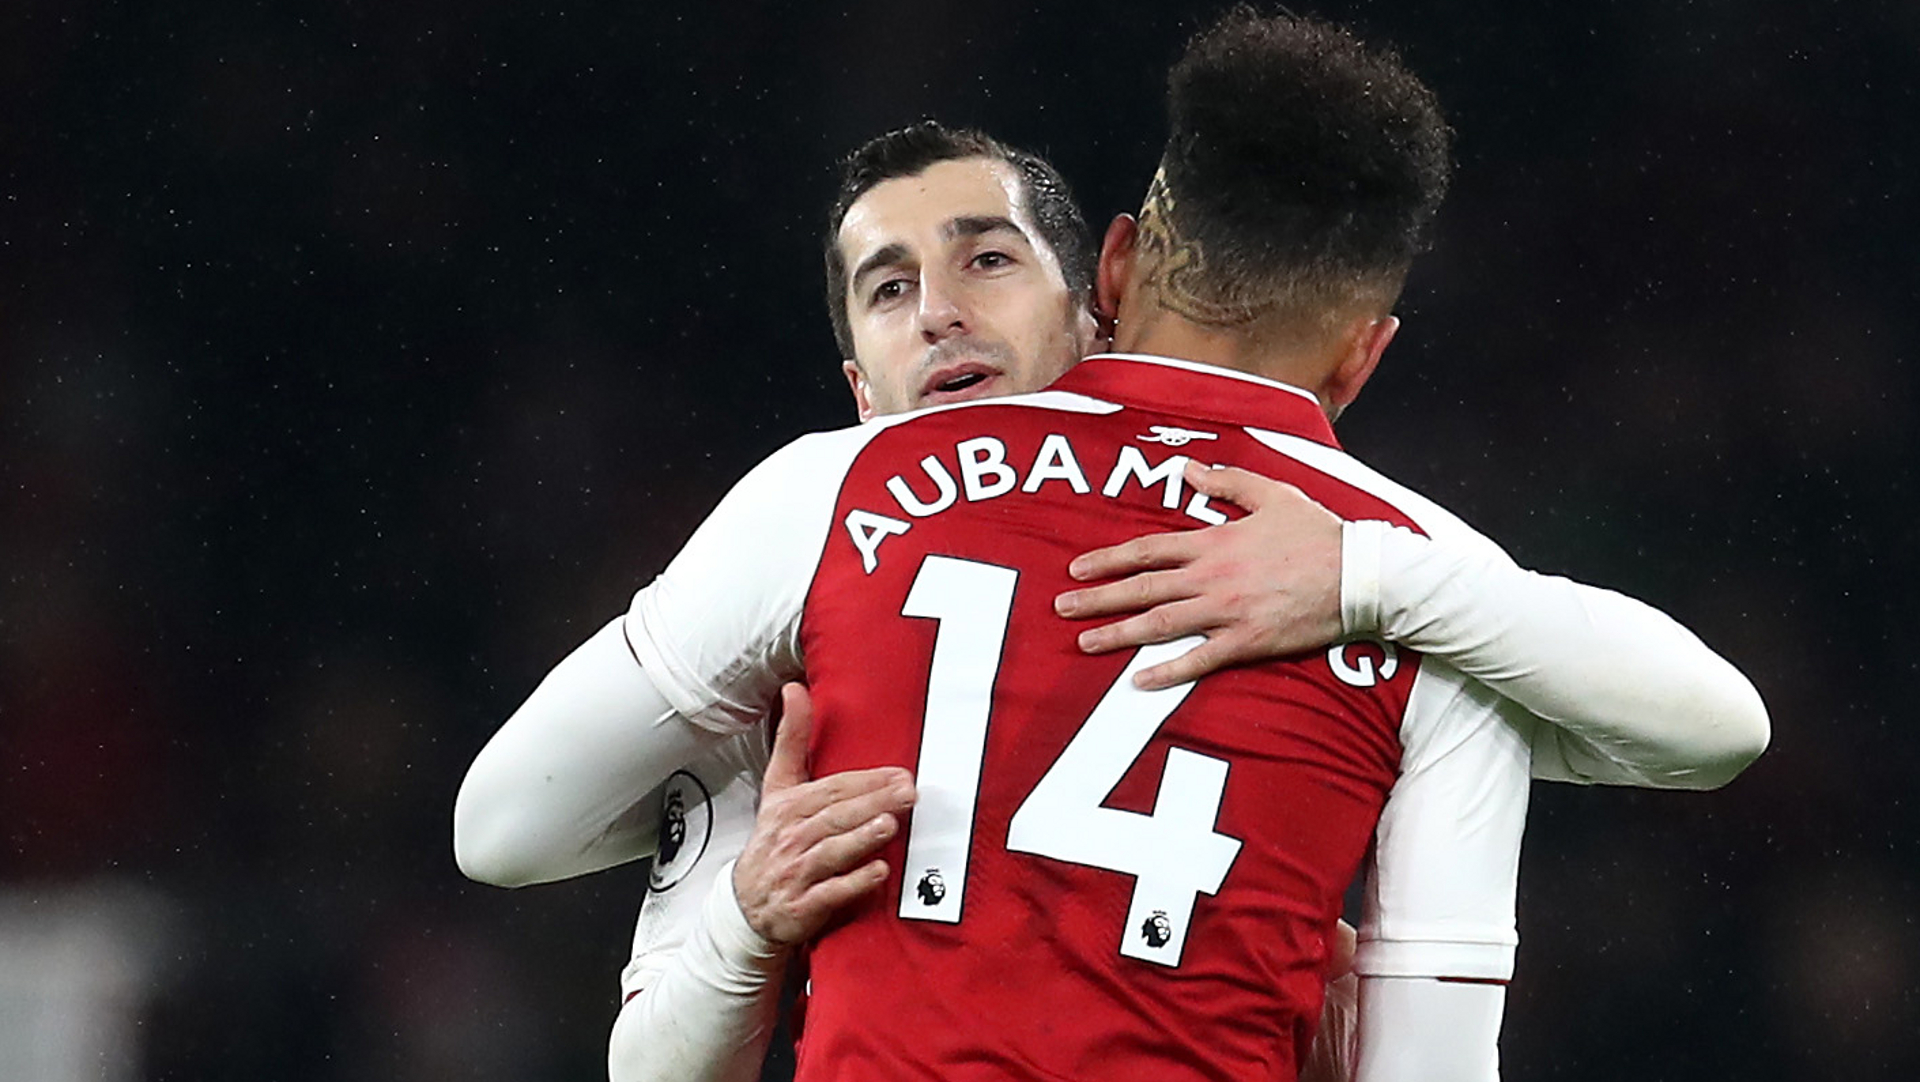 EPL: Aubameyang, Mkhitaryan speak on experiences in Arsena